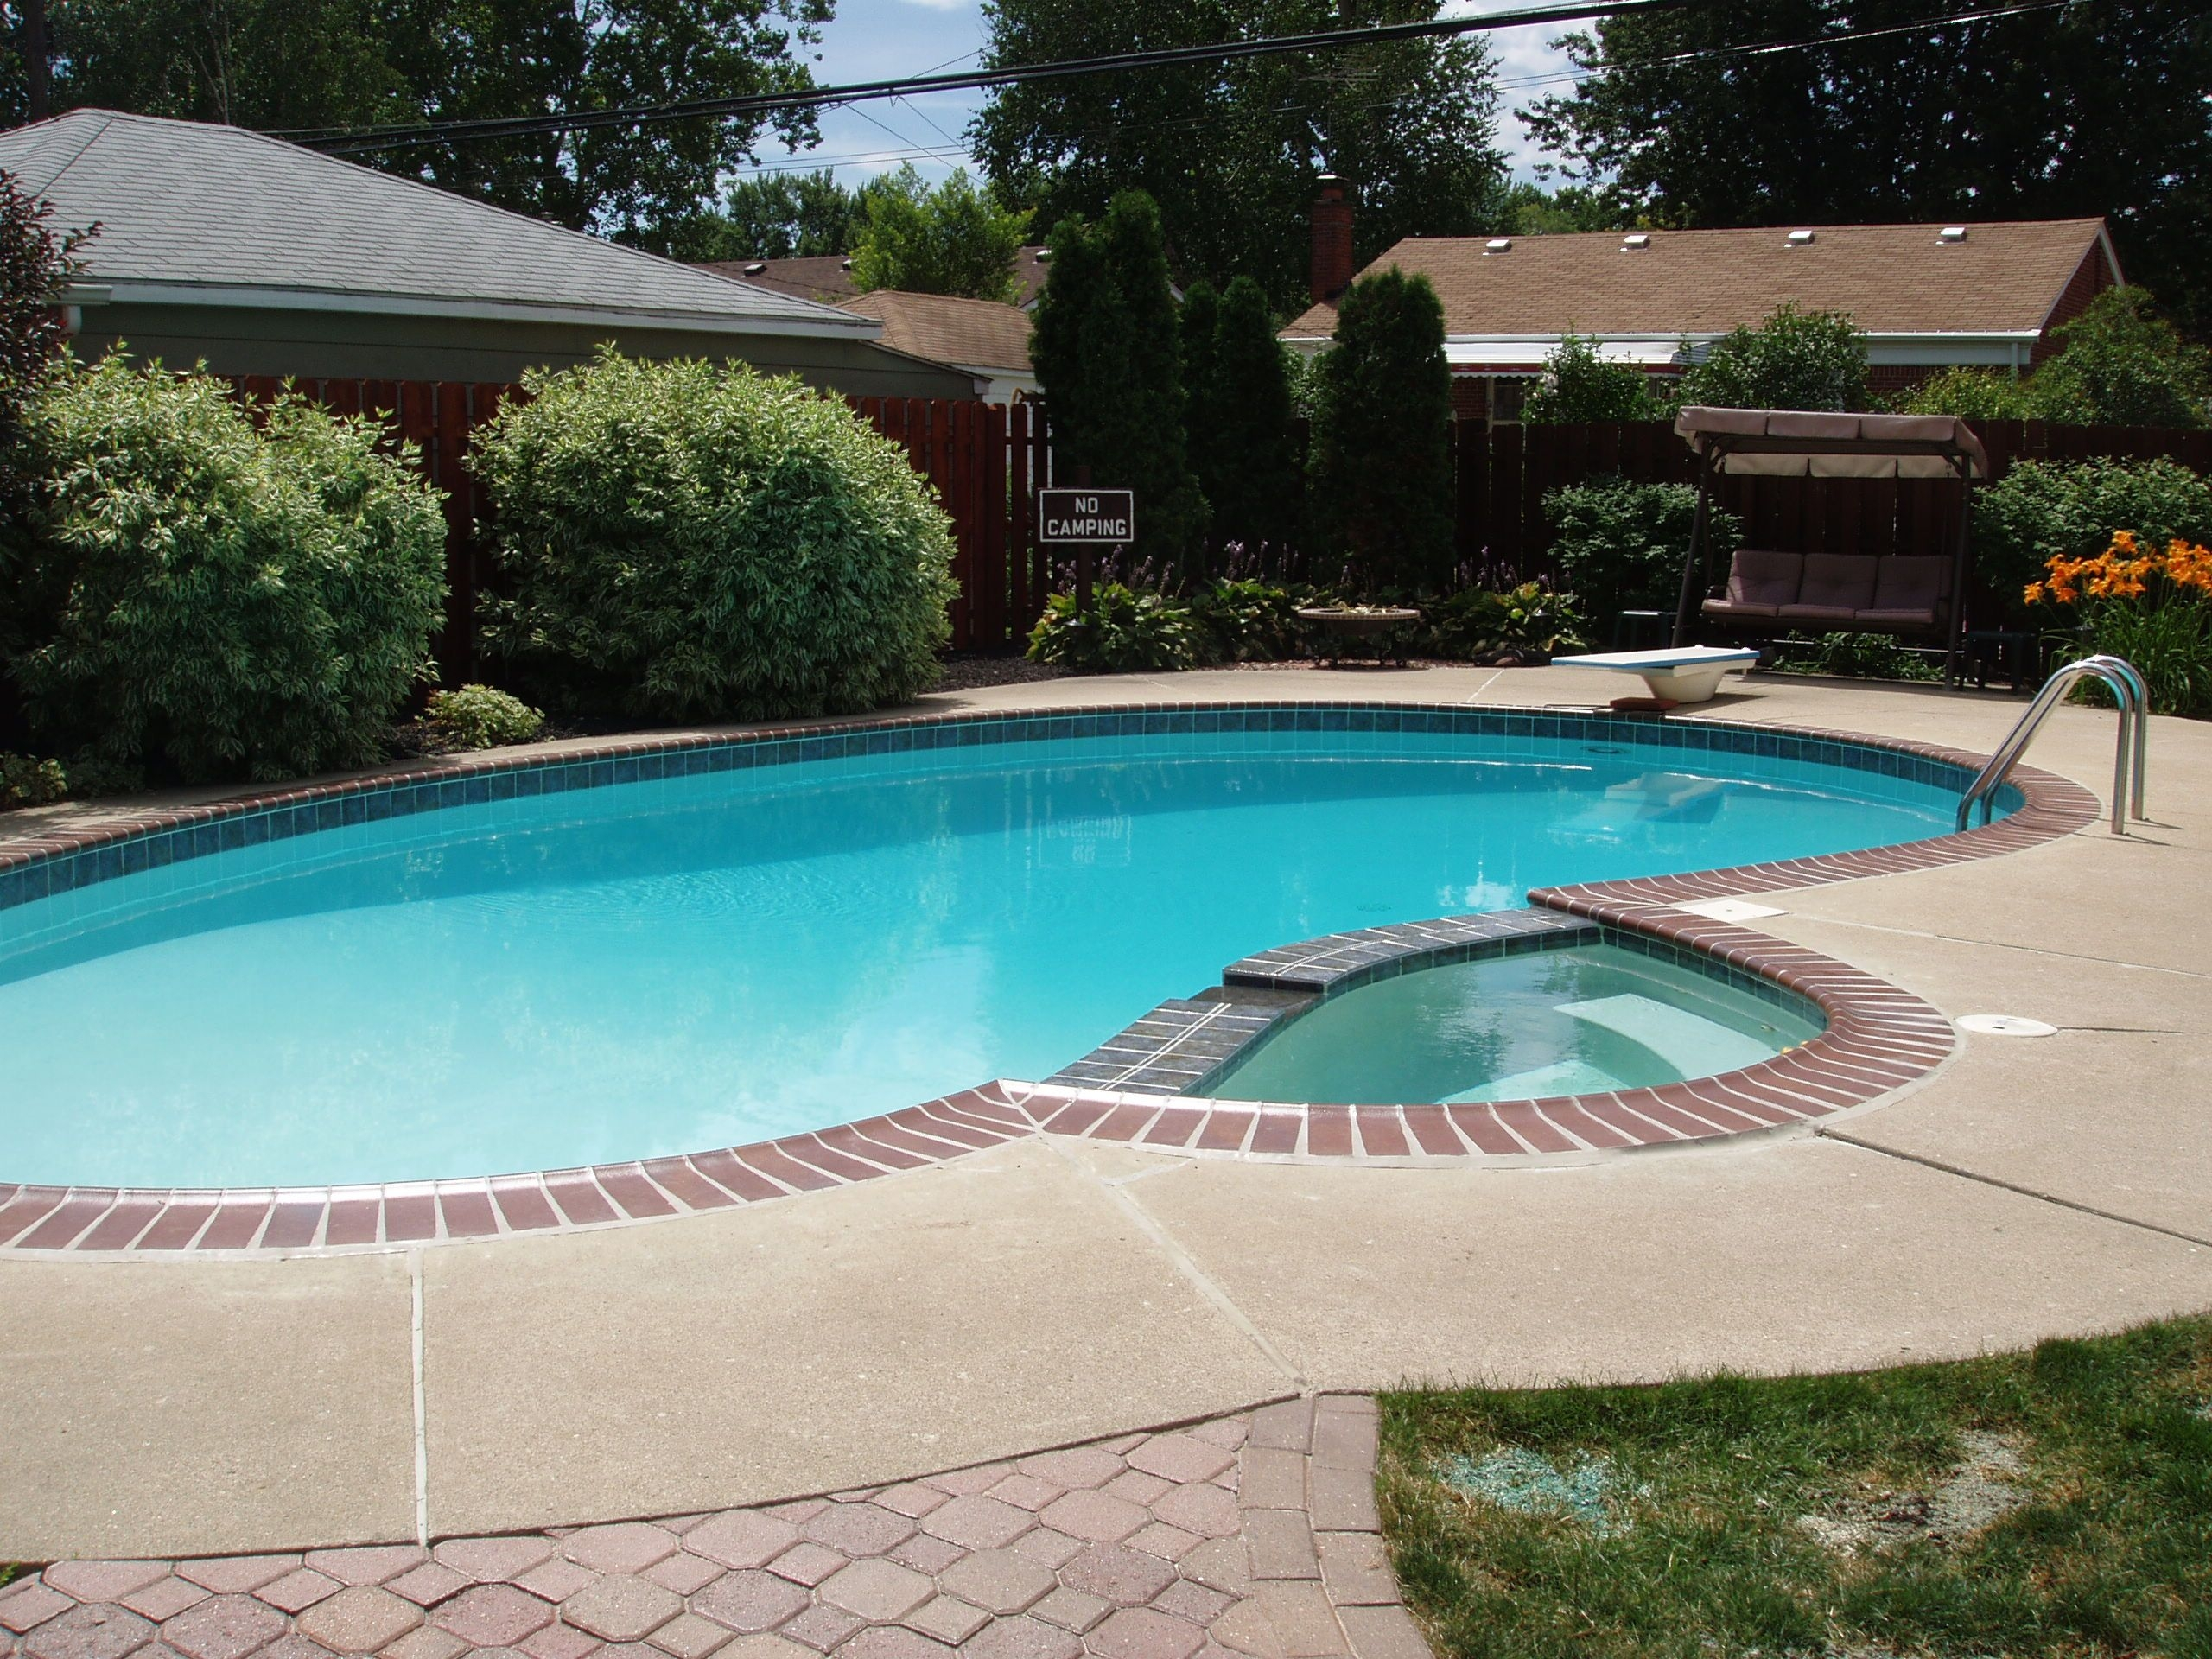 lining a pool edge with thin brick tile is an excellent decorative